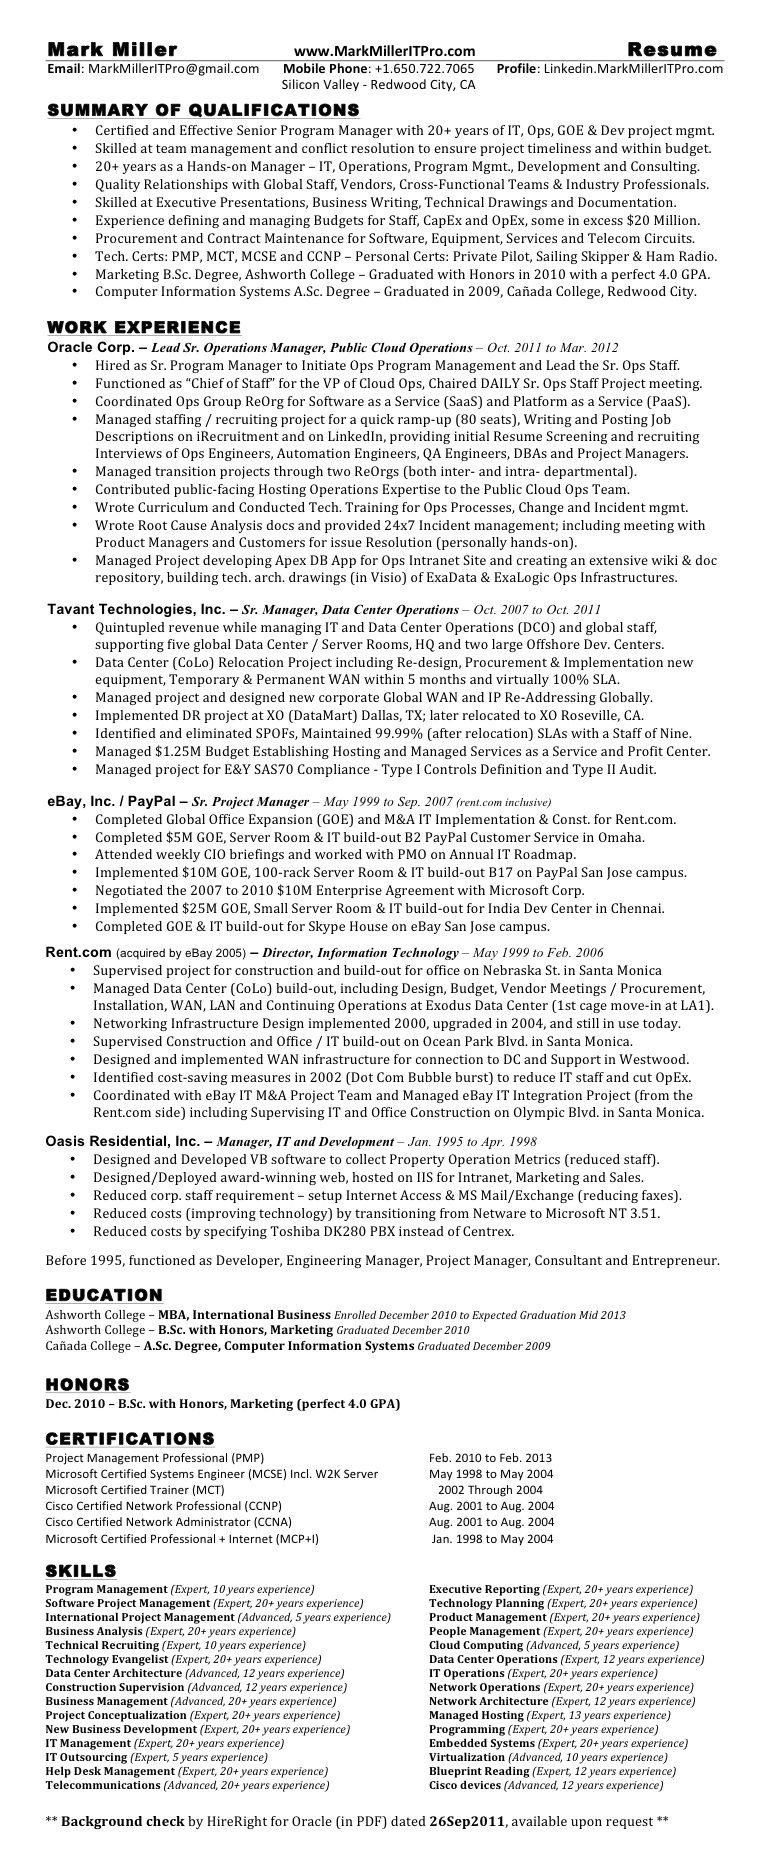 Paid homework services salt lake city shipping sample resume for pmp certification application audit pmp certification requirements pmp eligibility guide pmp application without pmp audit home 1betcityfo Images